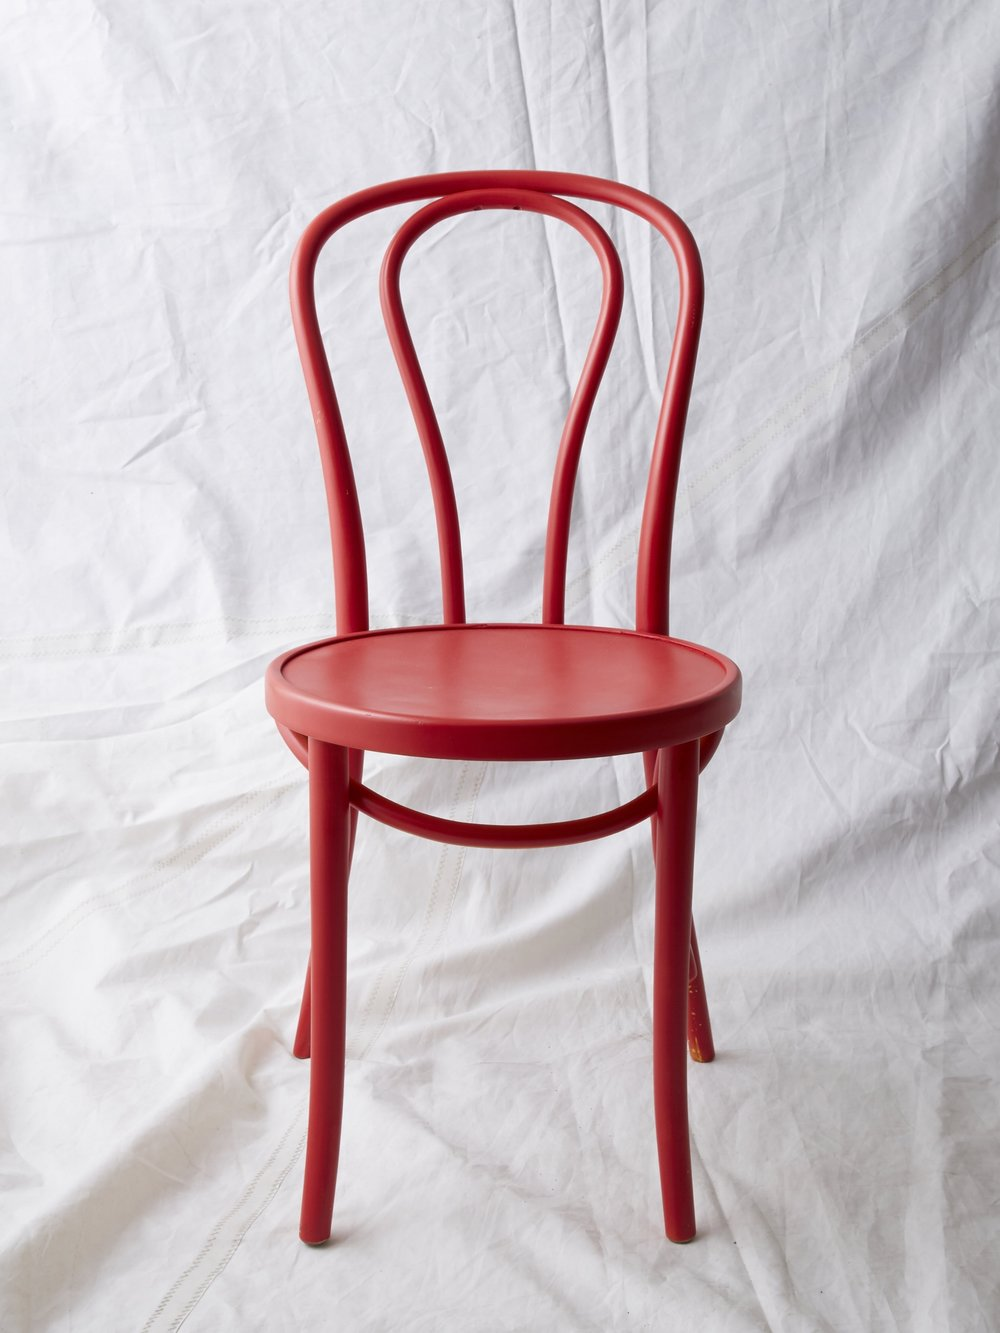 "CH024 Red painted Thonet chair 35"" H x 16"" W x 20"" D $75/week Set of 1"